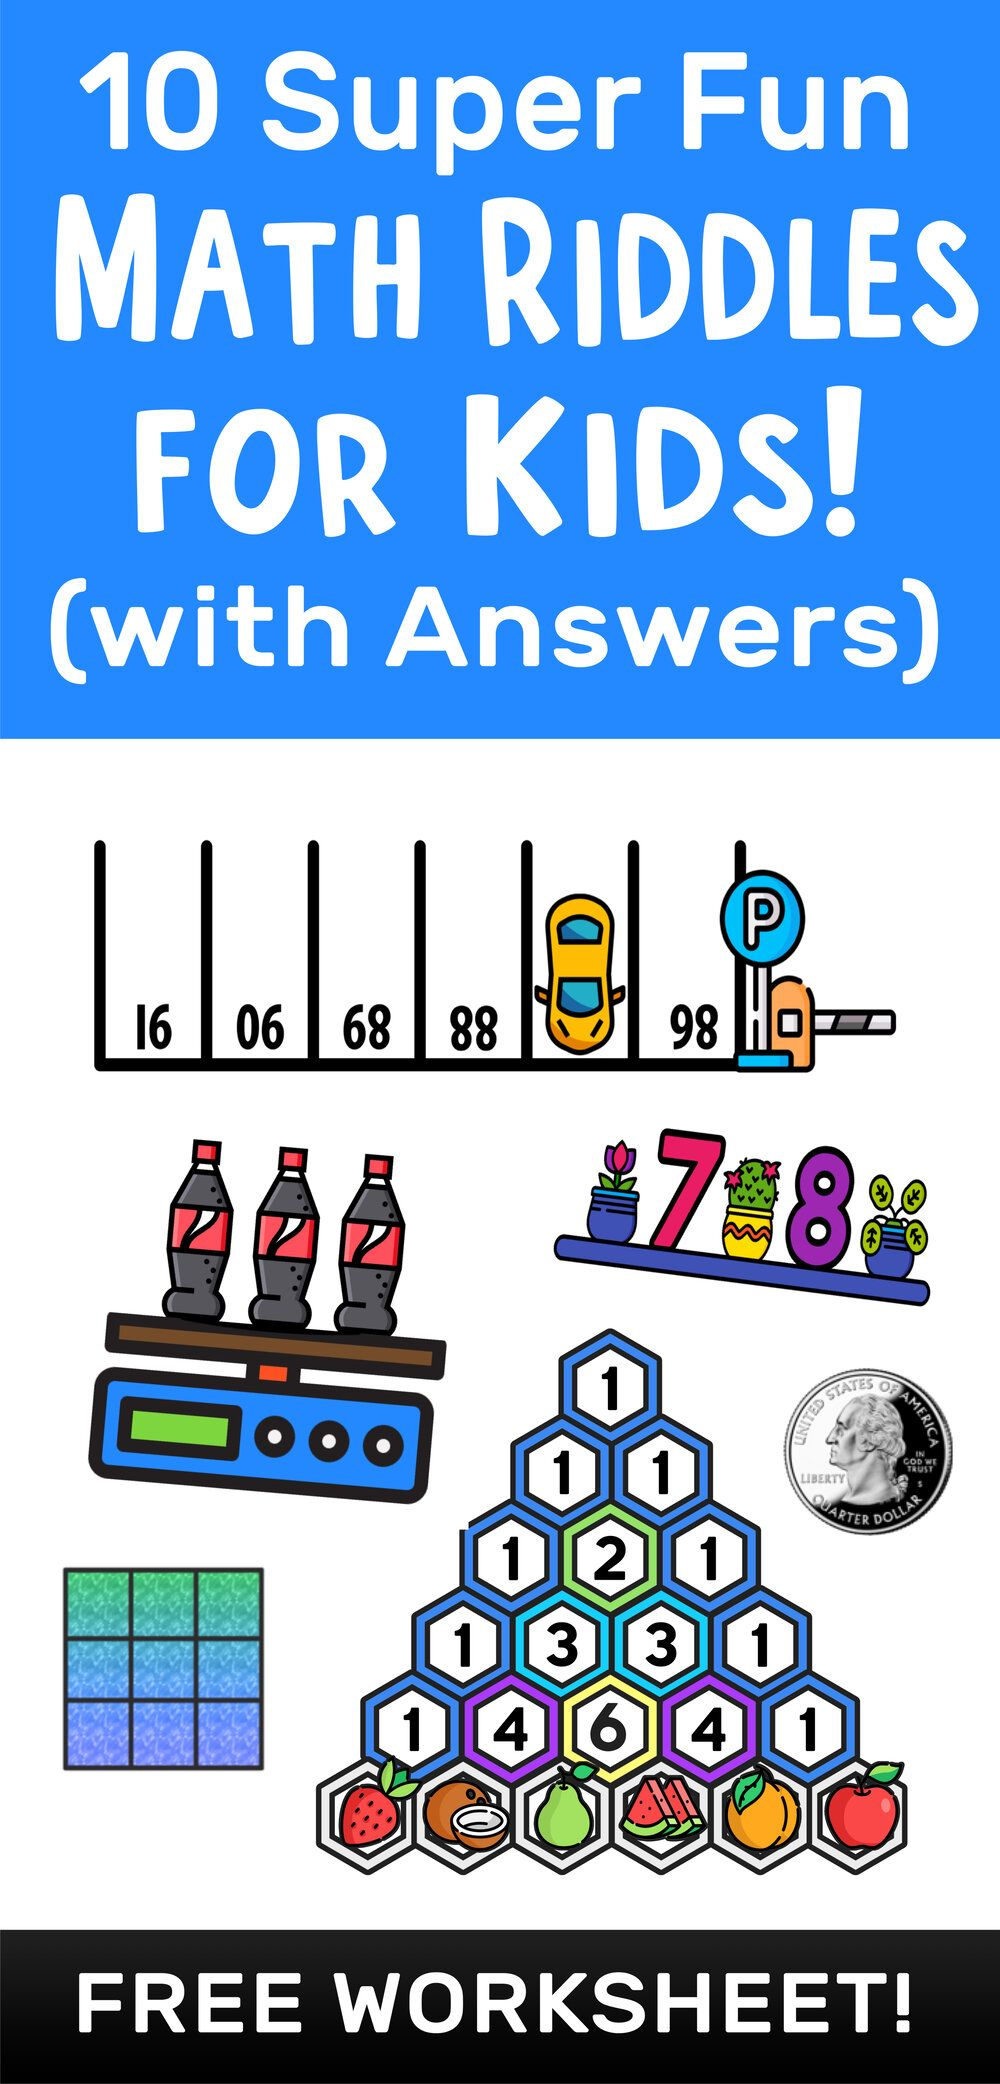 10 Super Fun Math Riddles For Kids Ages 10 With Answers Mashup Math In 2020 Math Riddles Fun Math Maths Puzzles